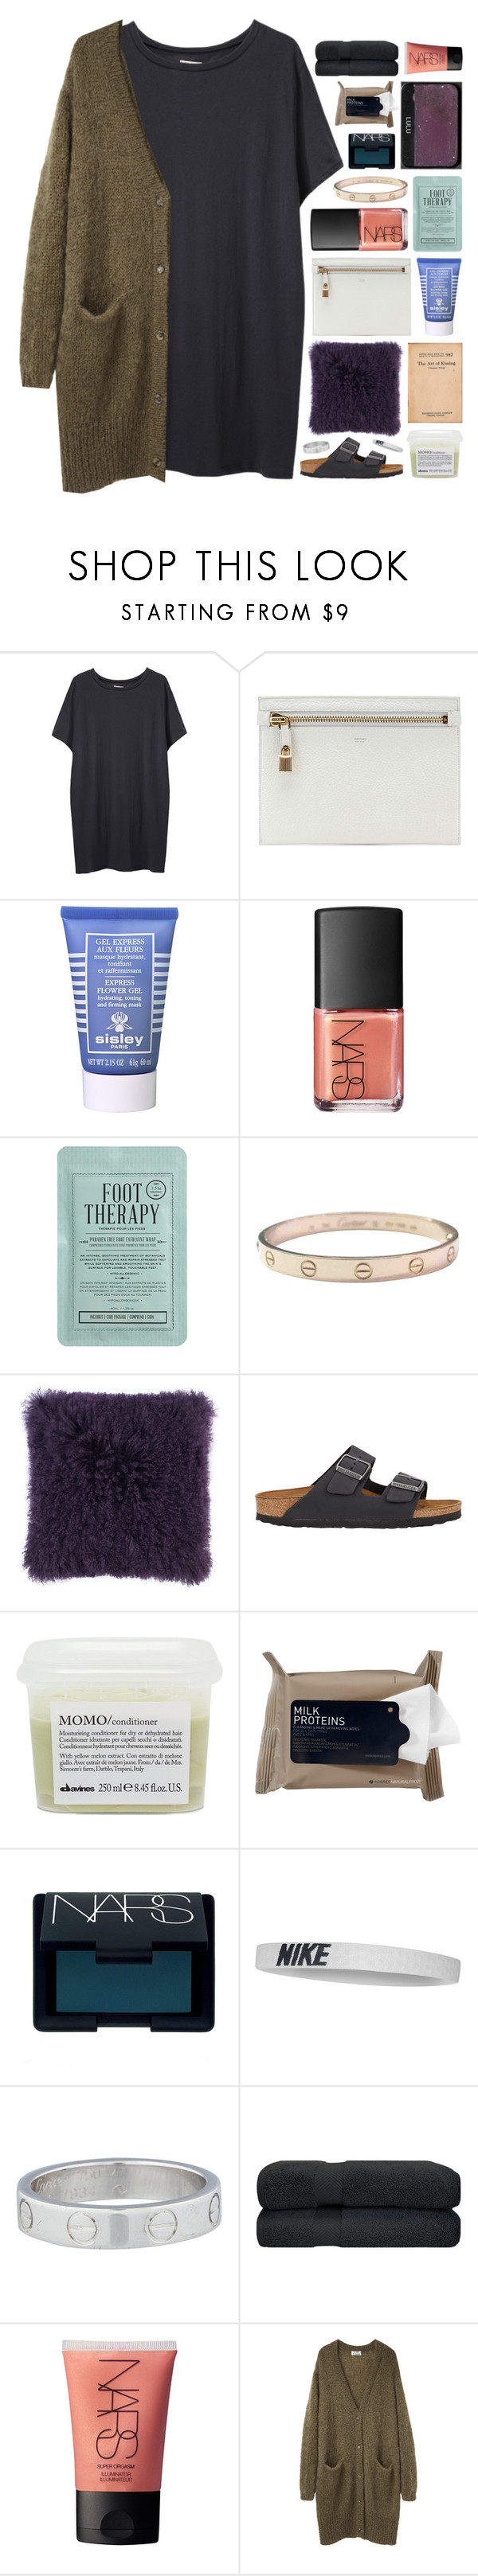 """""""too high to actually fly."""" by annamari-a ❤ liked on Polyvore featuring Organic by John Patrick, Tom Ford, Sisley Paris, NARS Cosmetics, Kocostar, Cartier, Birkenstock, Davines, Korres and NIKE"""